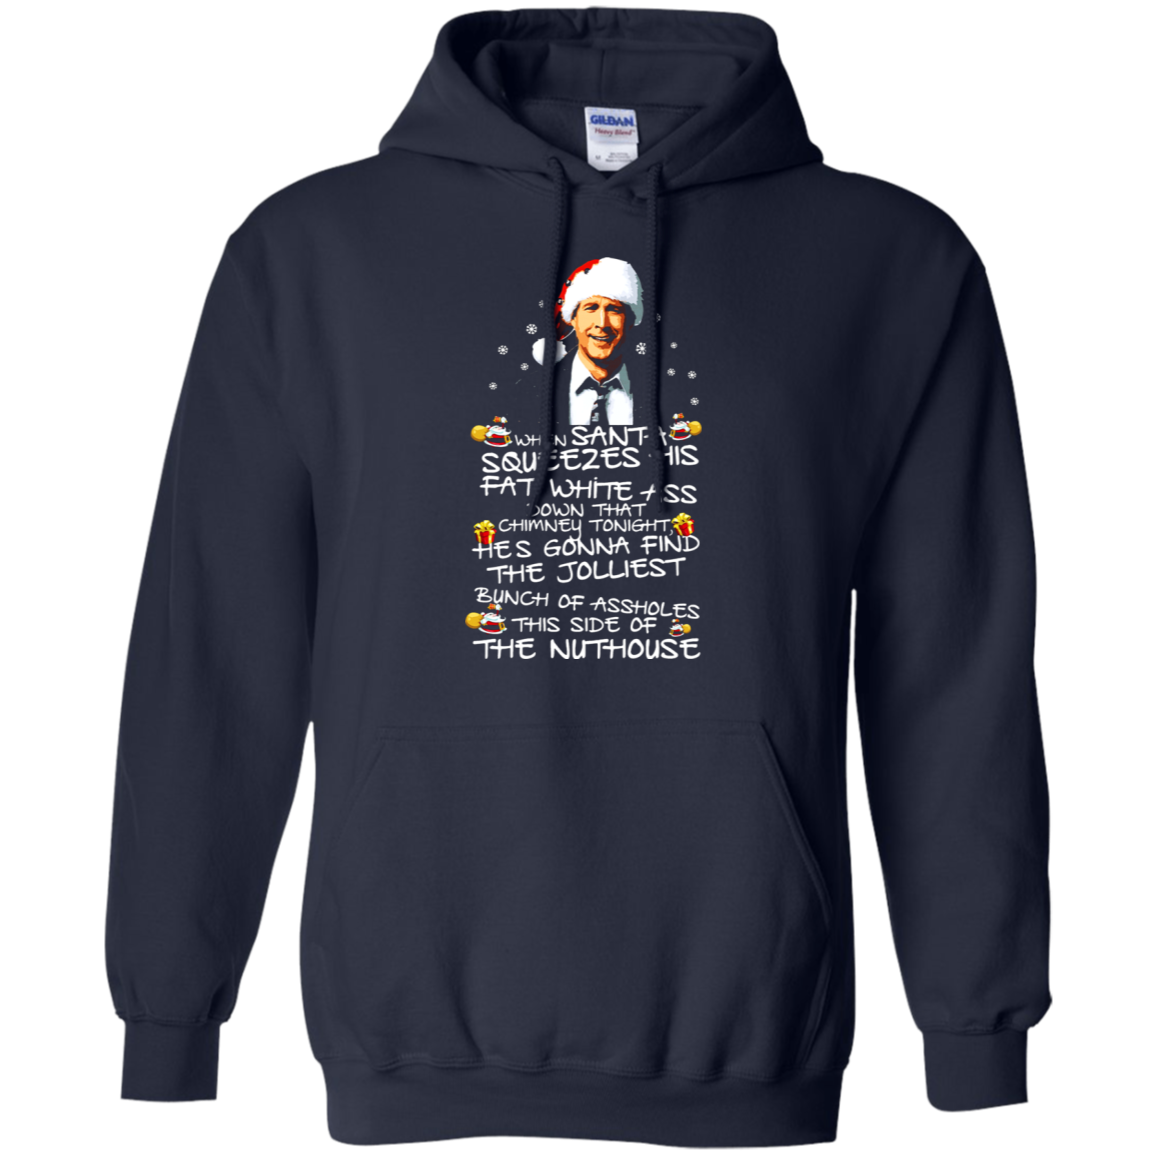 Agr This Side Of The Nuthouse Christmas Vacation Hoodie _y3d2rdlk 89